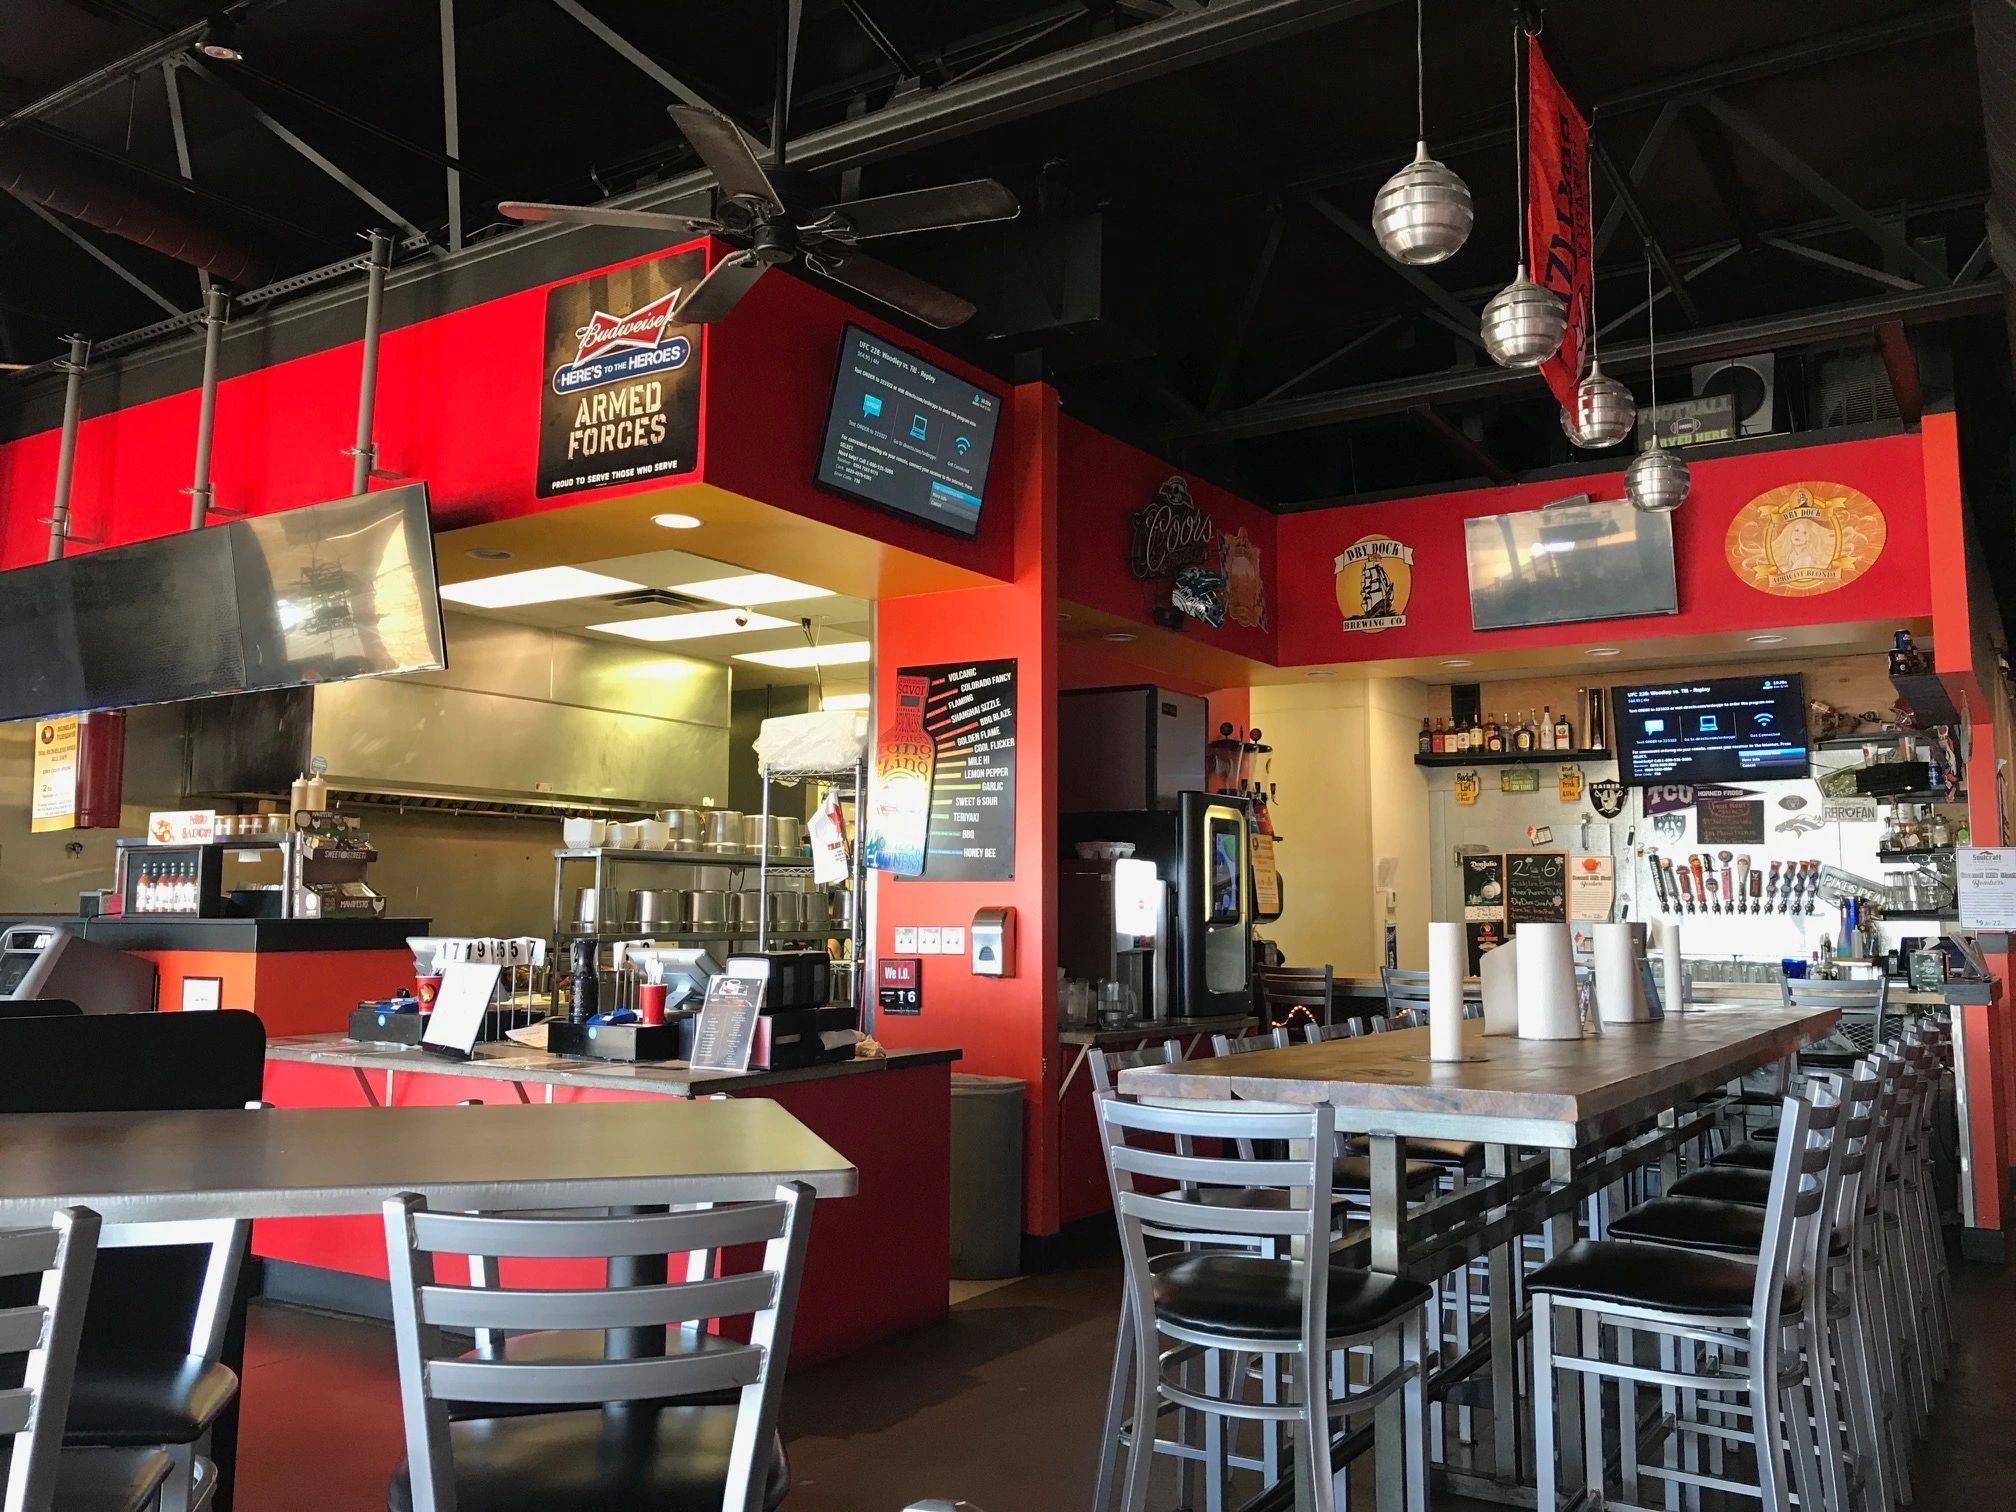 feedyourflame, Golden Flame, chicken wings, Aurora Colorado, Denver, places to eat near me, bars